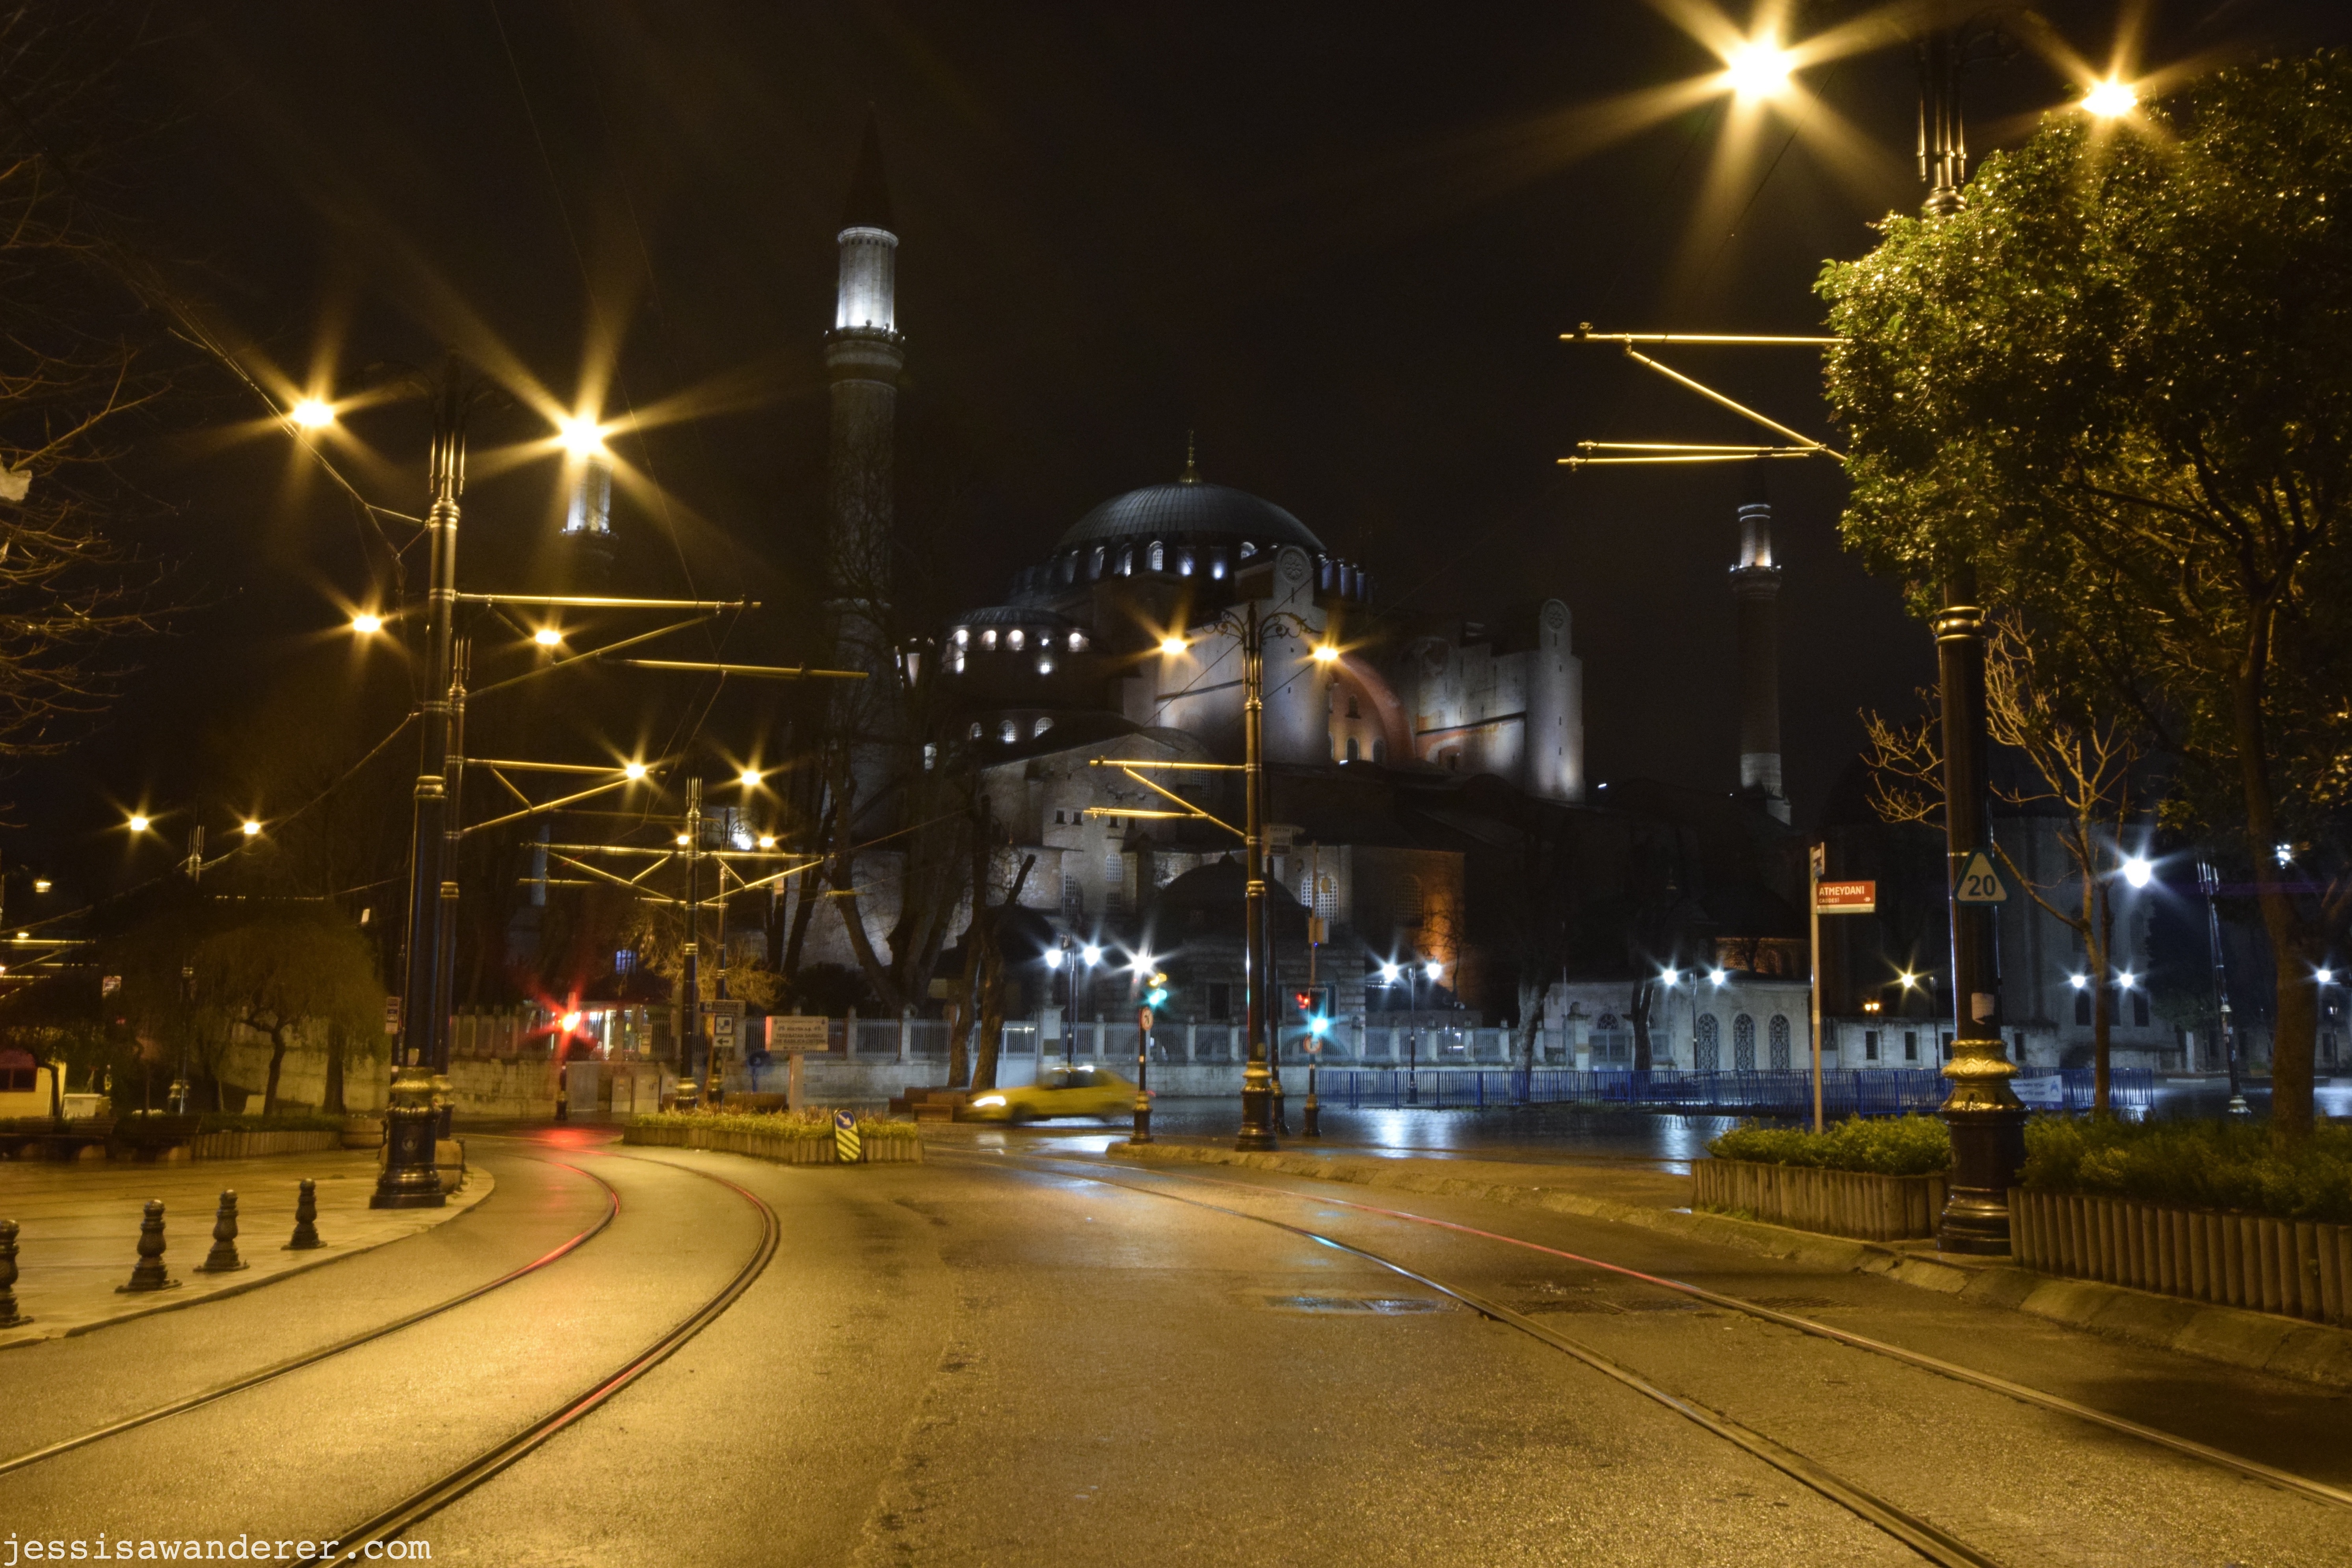 Istanbul's Streets